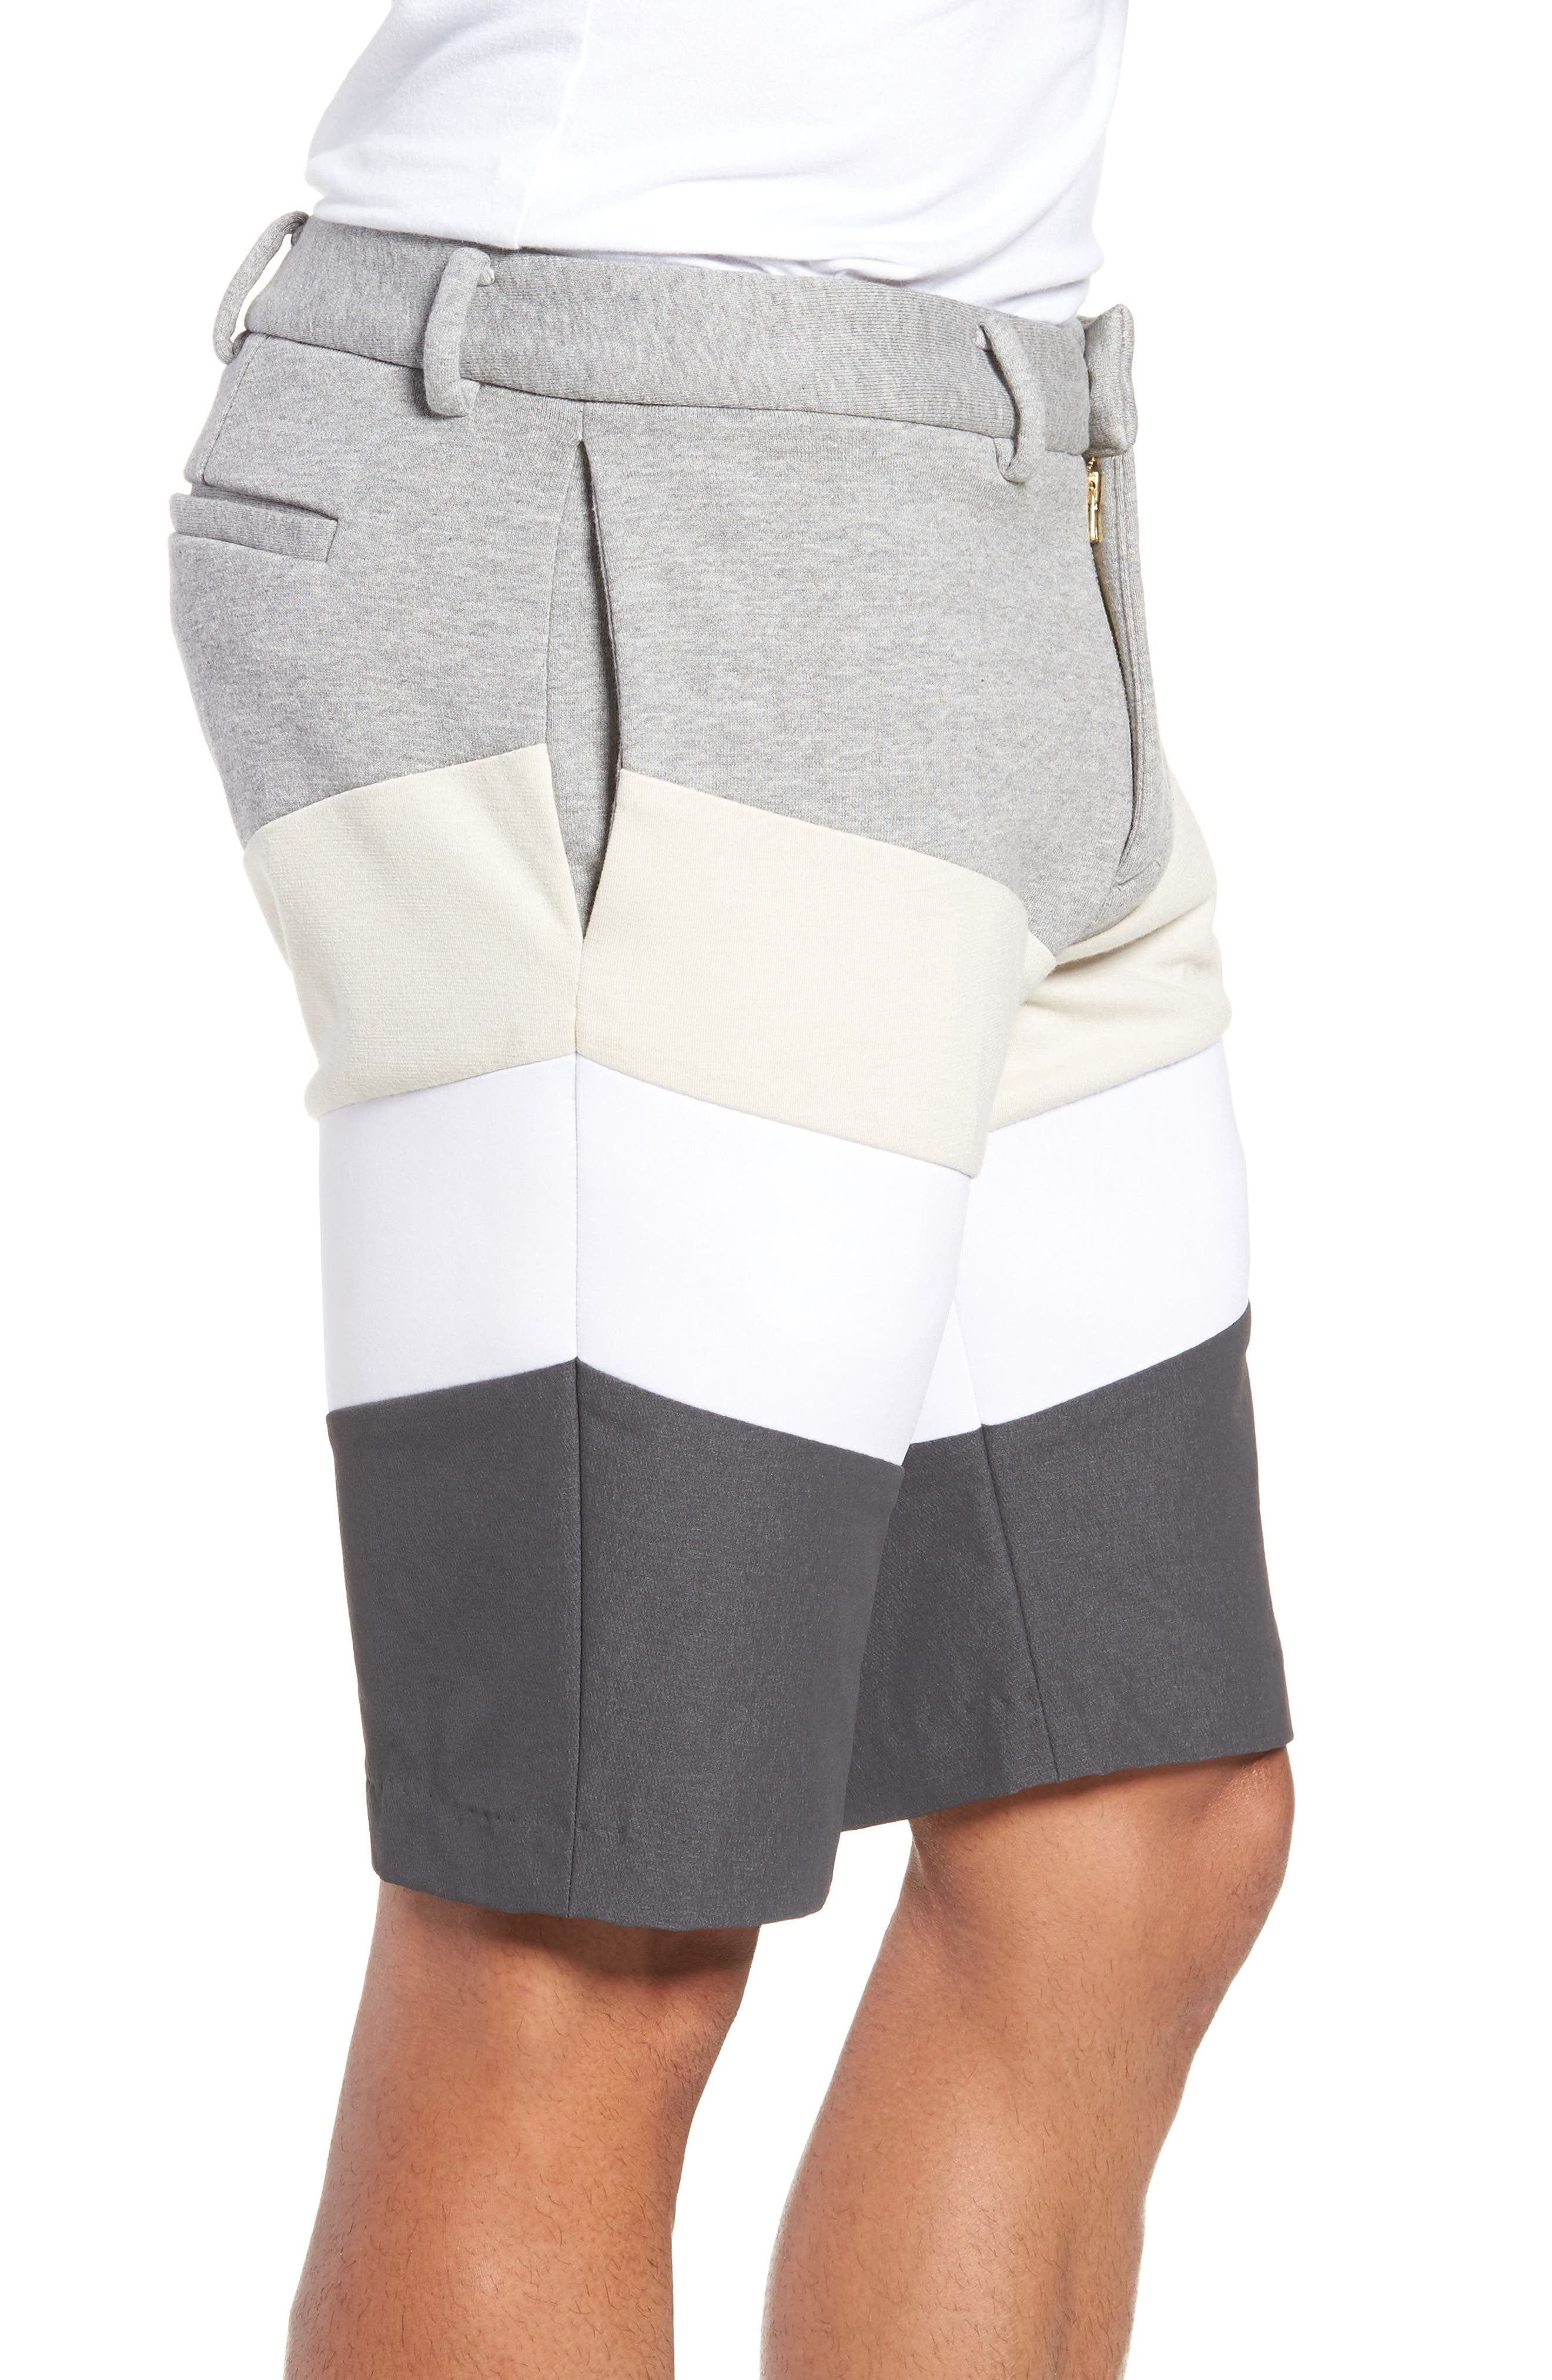 Chevron Colorblock Shorts,                             Alternate thumbnail 3, color,                             HEATHER GREY